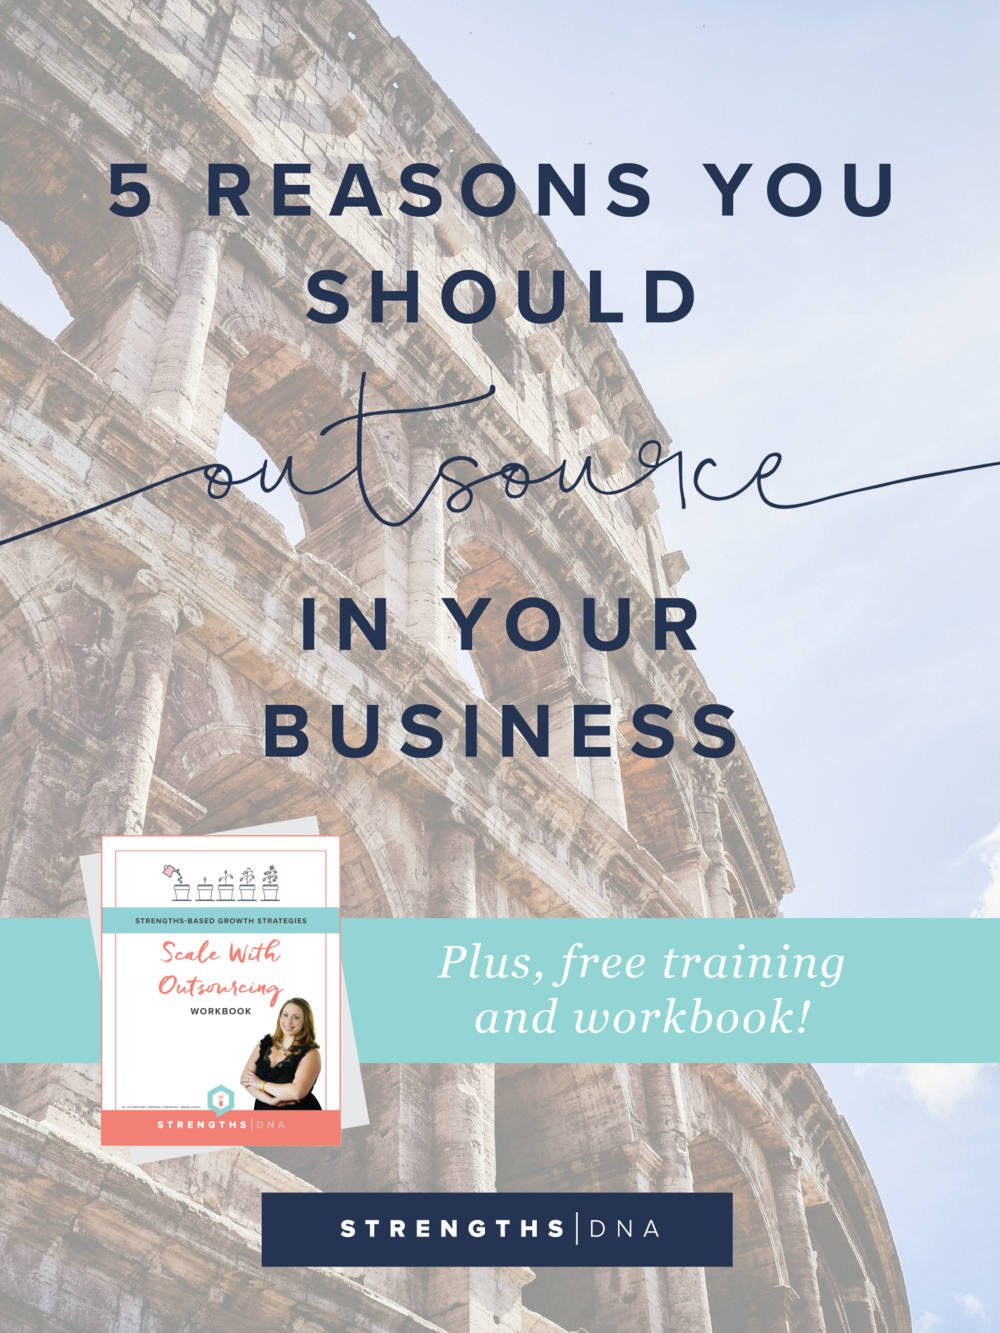 5 Reasons You Should Outsource in Your Business + Free Training and Workbook